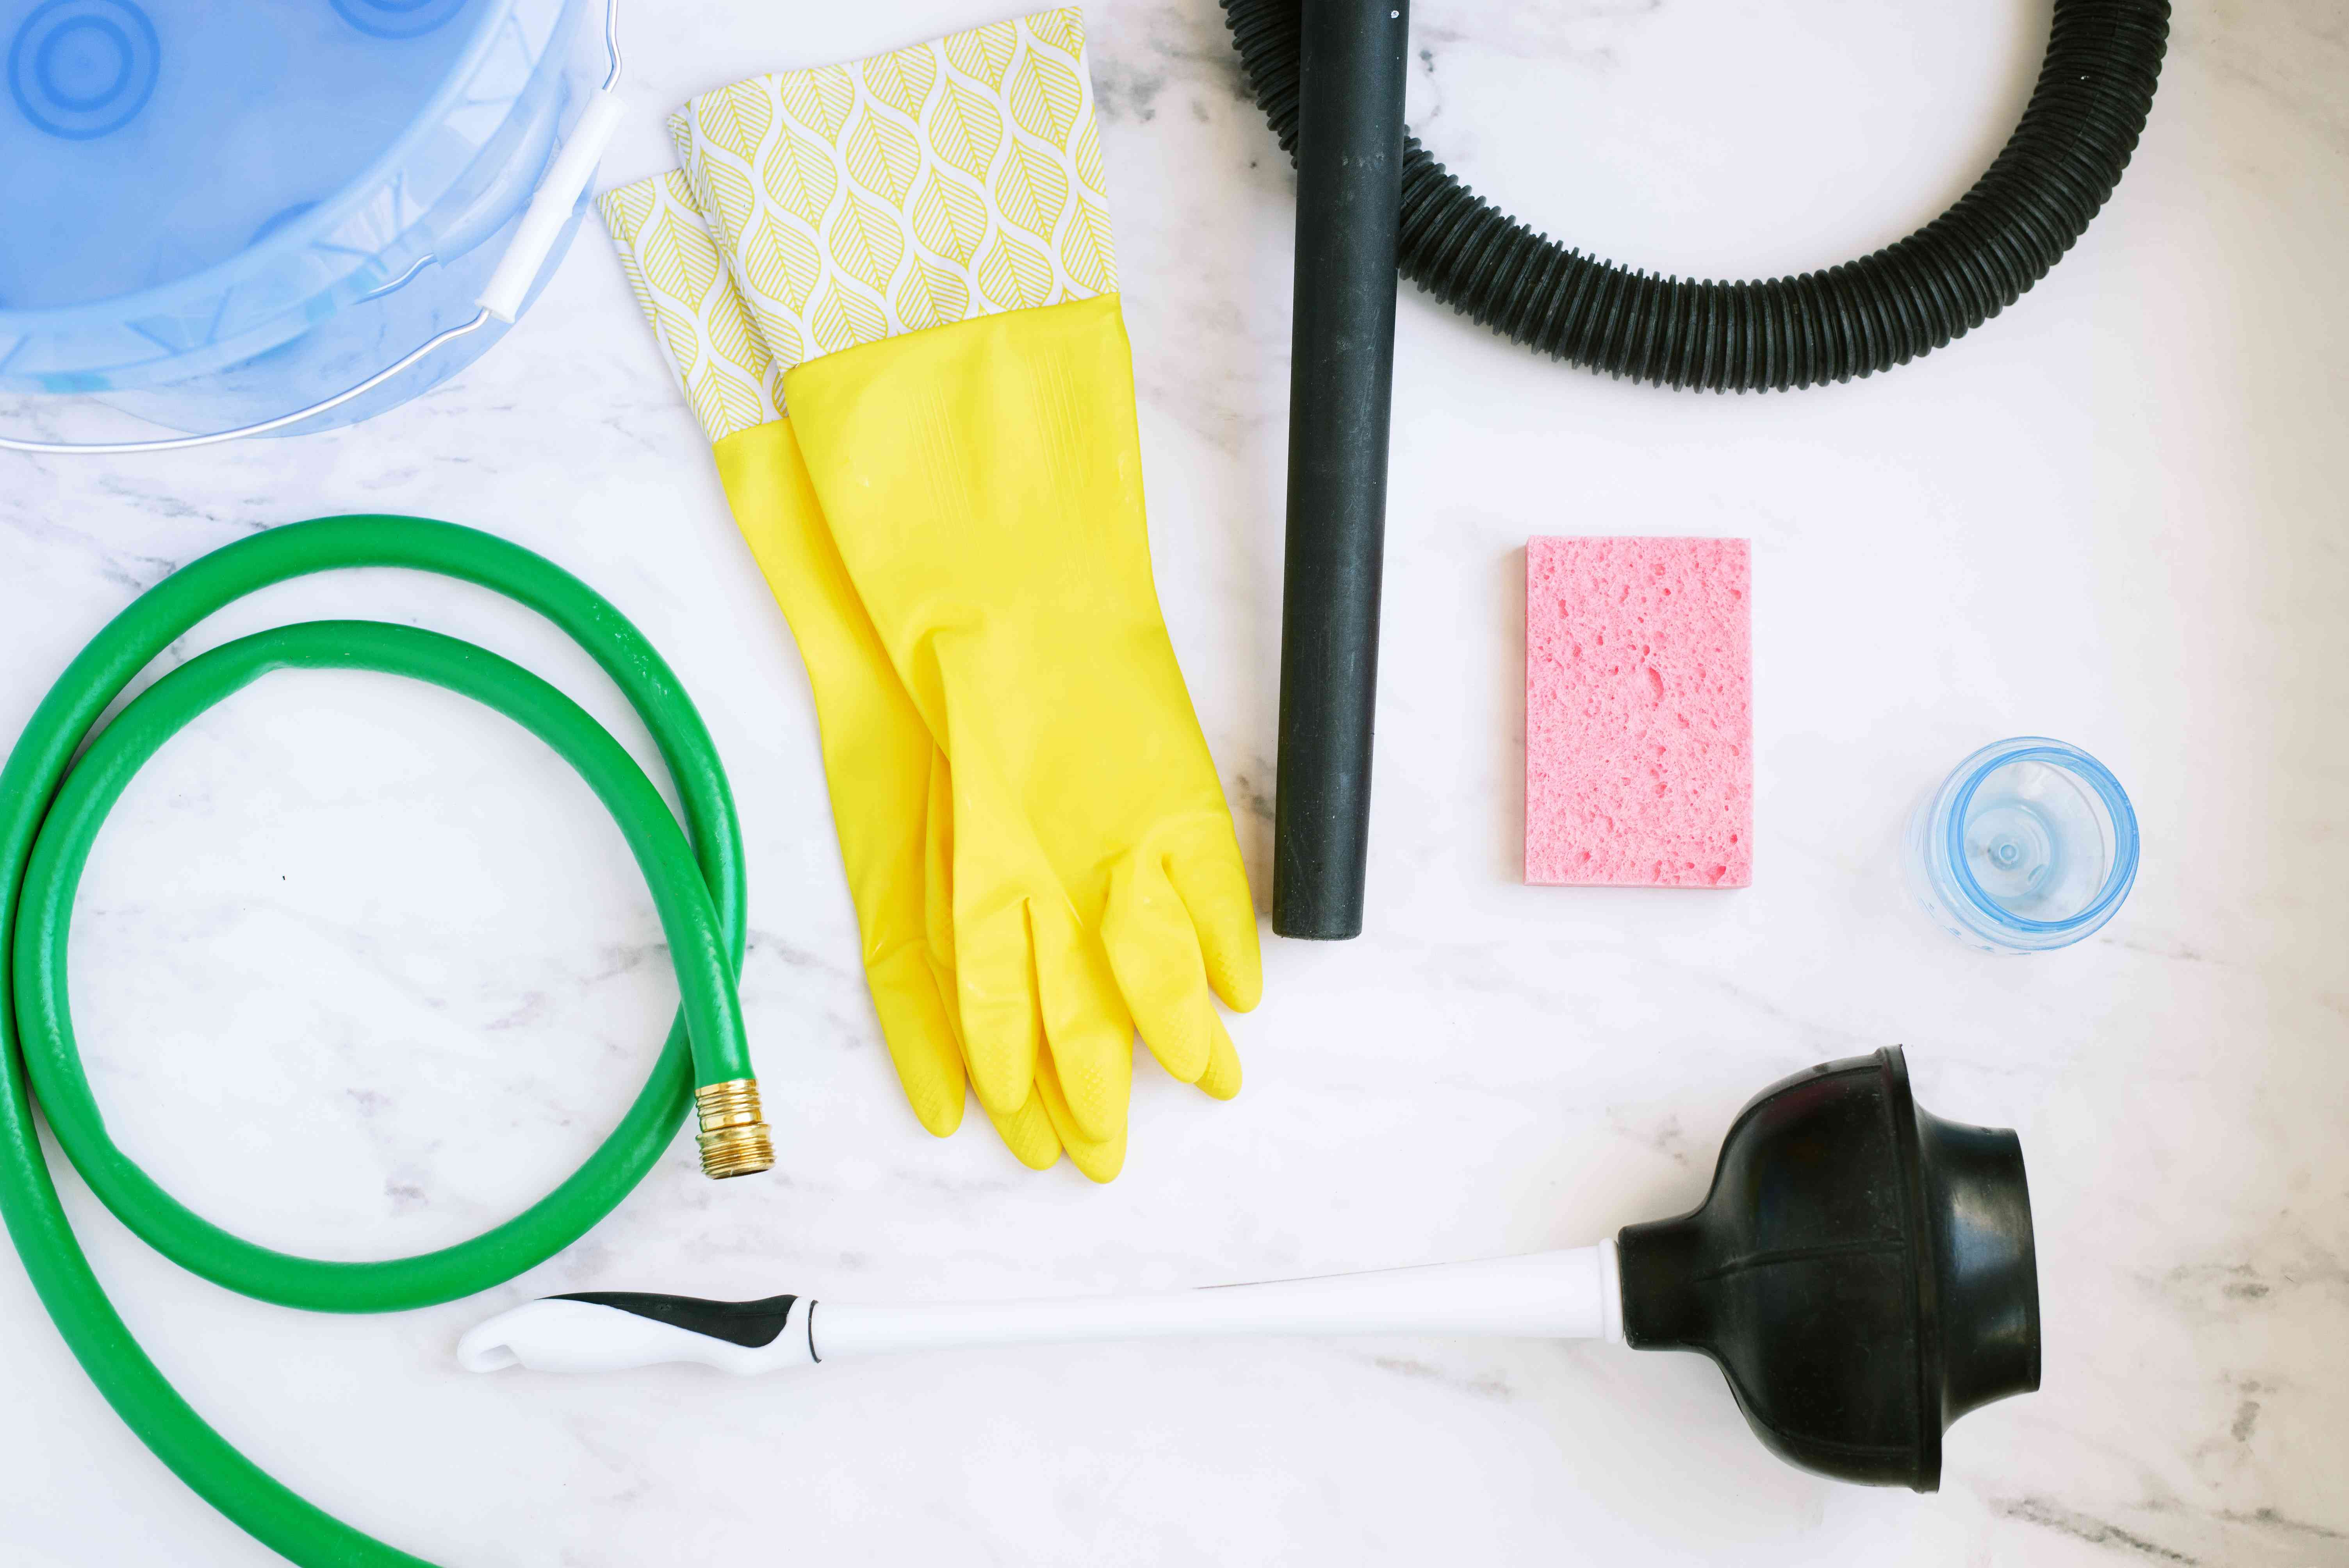 Materials and tools to drain out a toilet